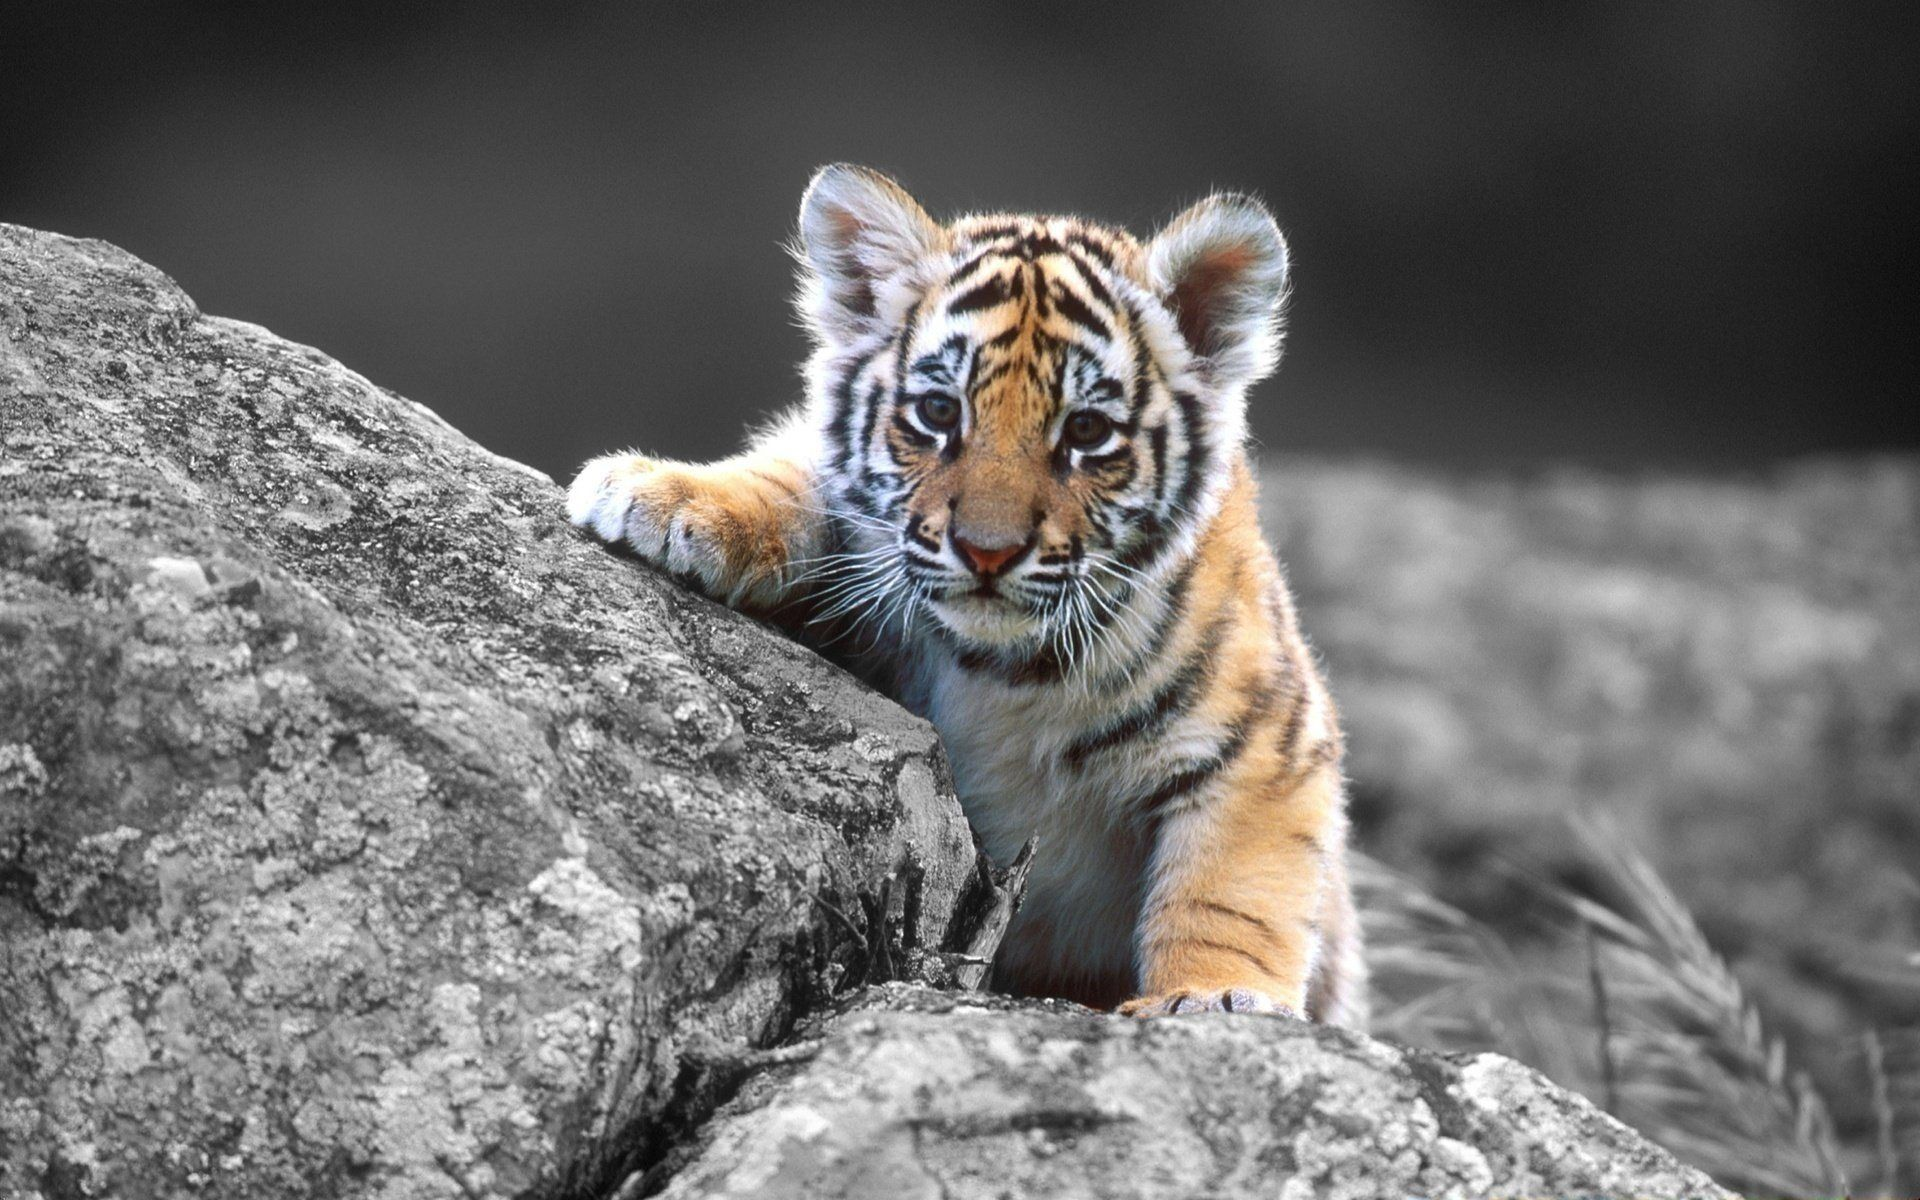 baby tiger images | Cute Tiger Baby Wallpapers Pictures Photos Images